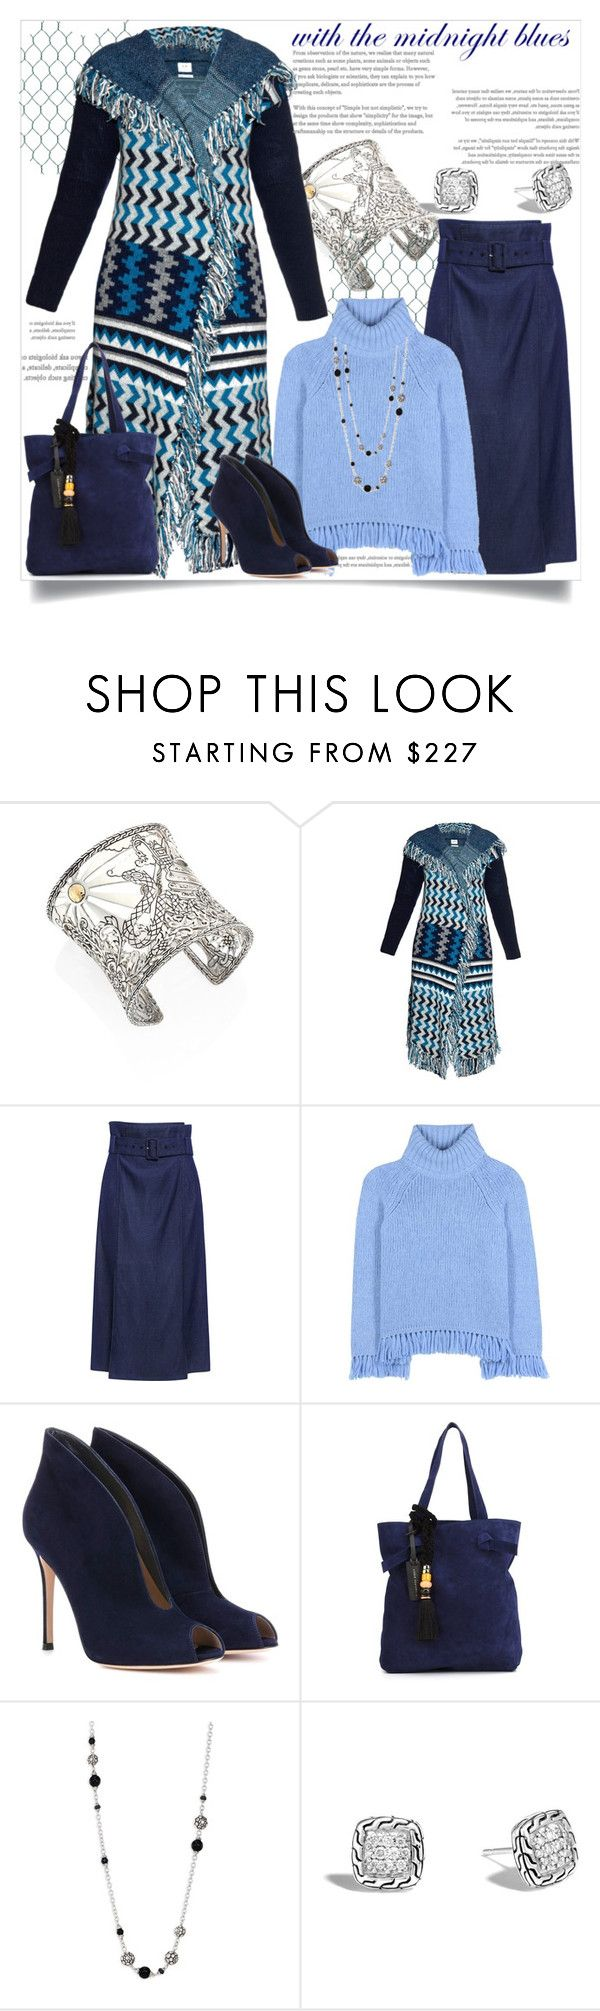 """""""Midnight Blues"""" by helenaymangual ❤ liked on Polyvore featuring John Hardy, Banjo & Matilda, TIBI, Tory Burch, Gianvito Rossi and Lizzie Fortunato Jewels"""